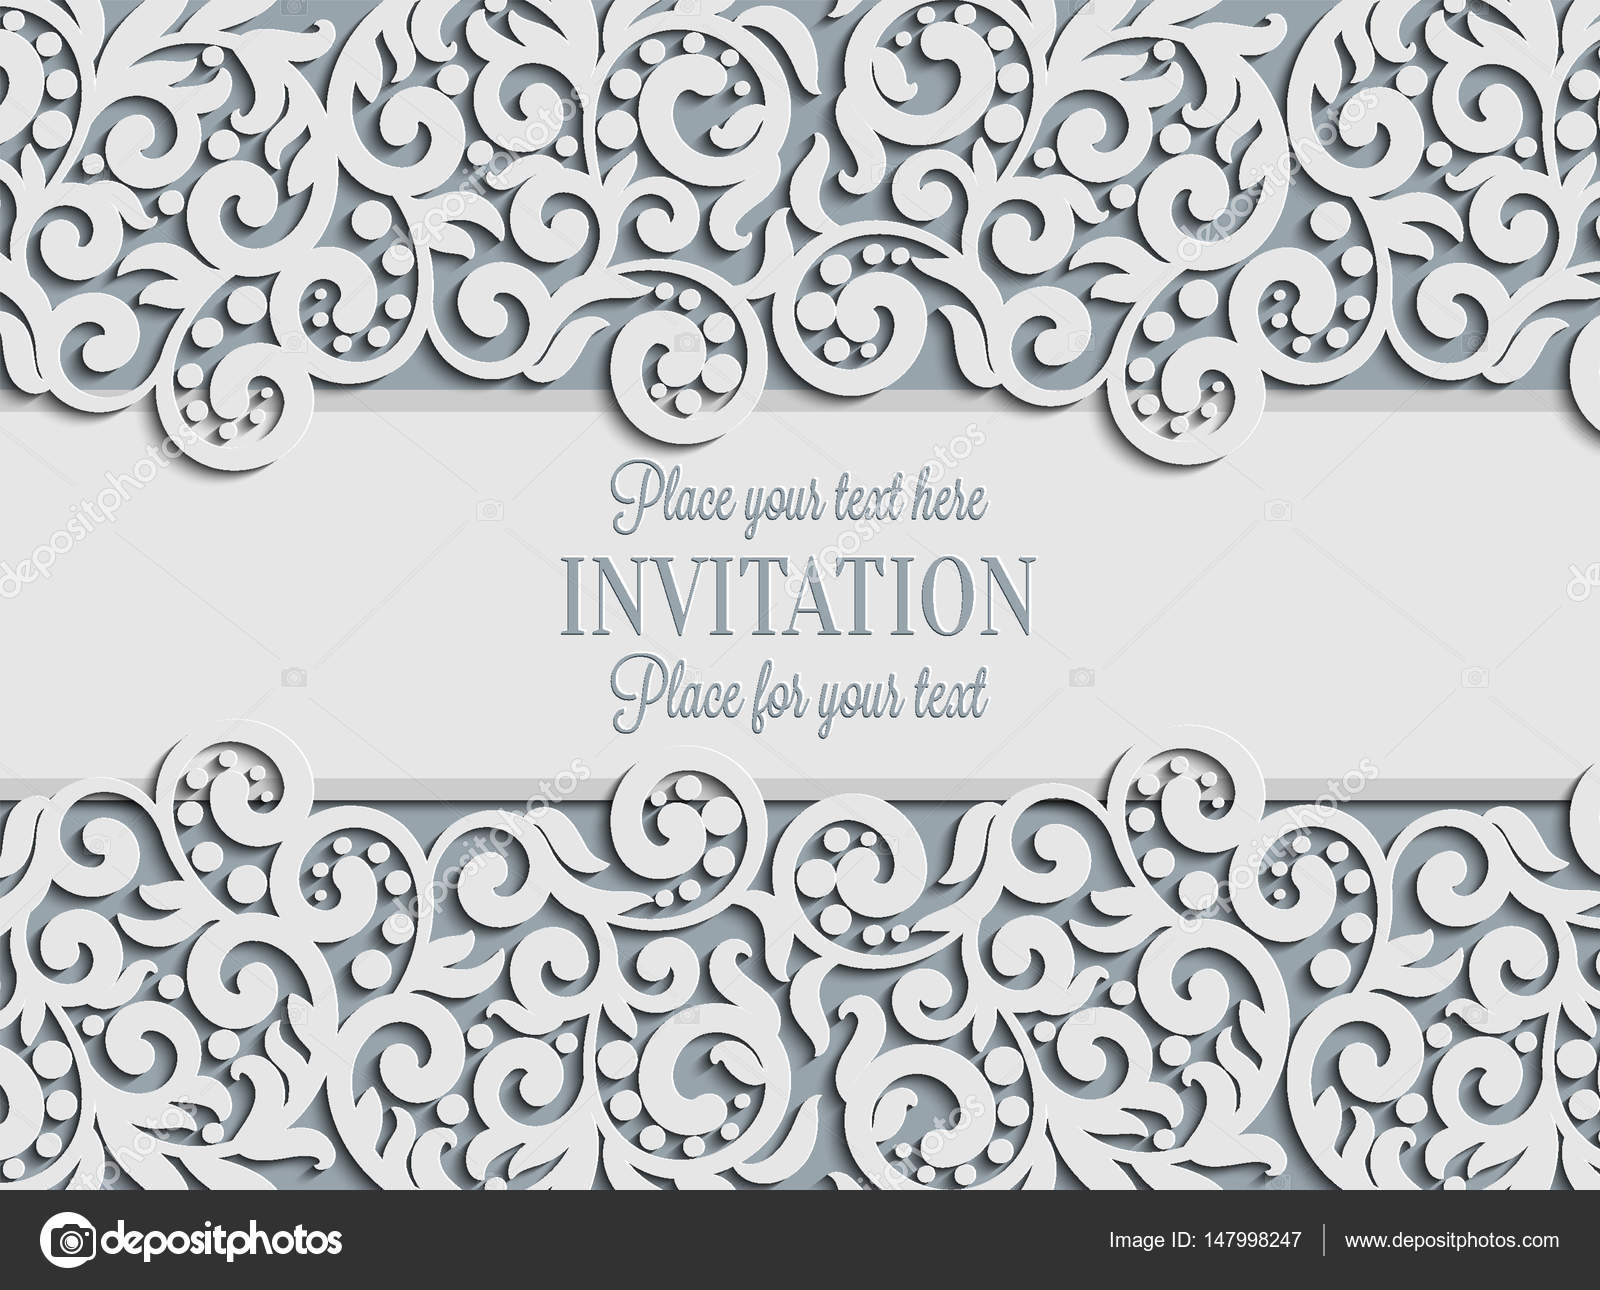 Vector Floral Swirls Decorated Invitation Card Abstract 3D Background Design Template With Place For Text White Simple Lace Shadow Paper Cut Effect